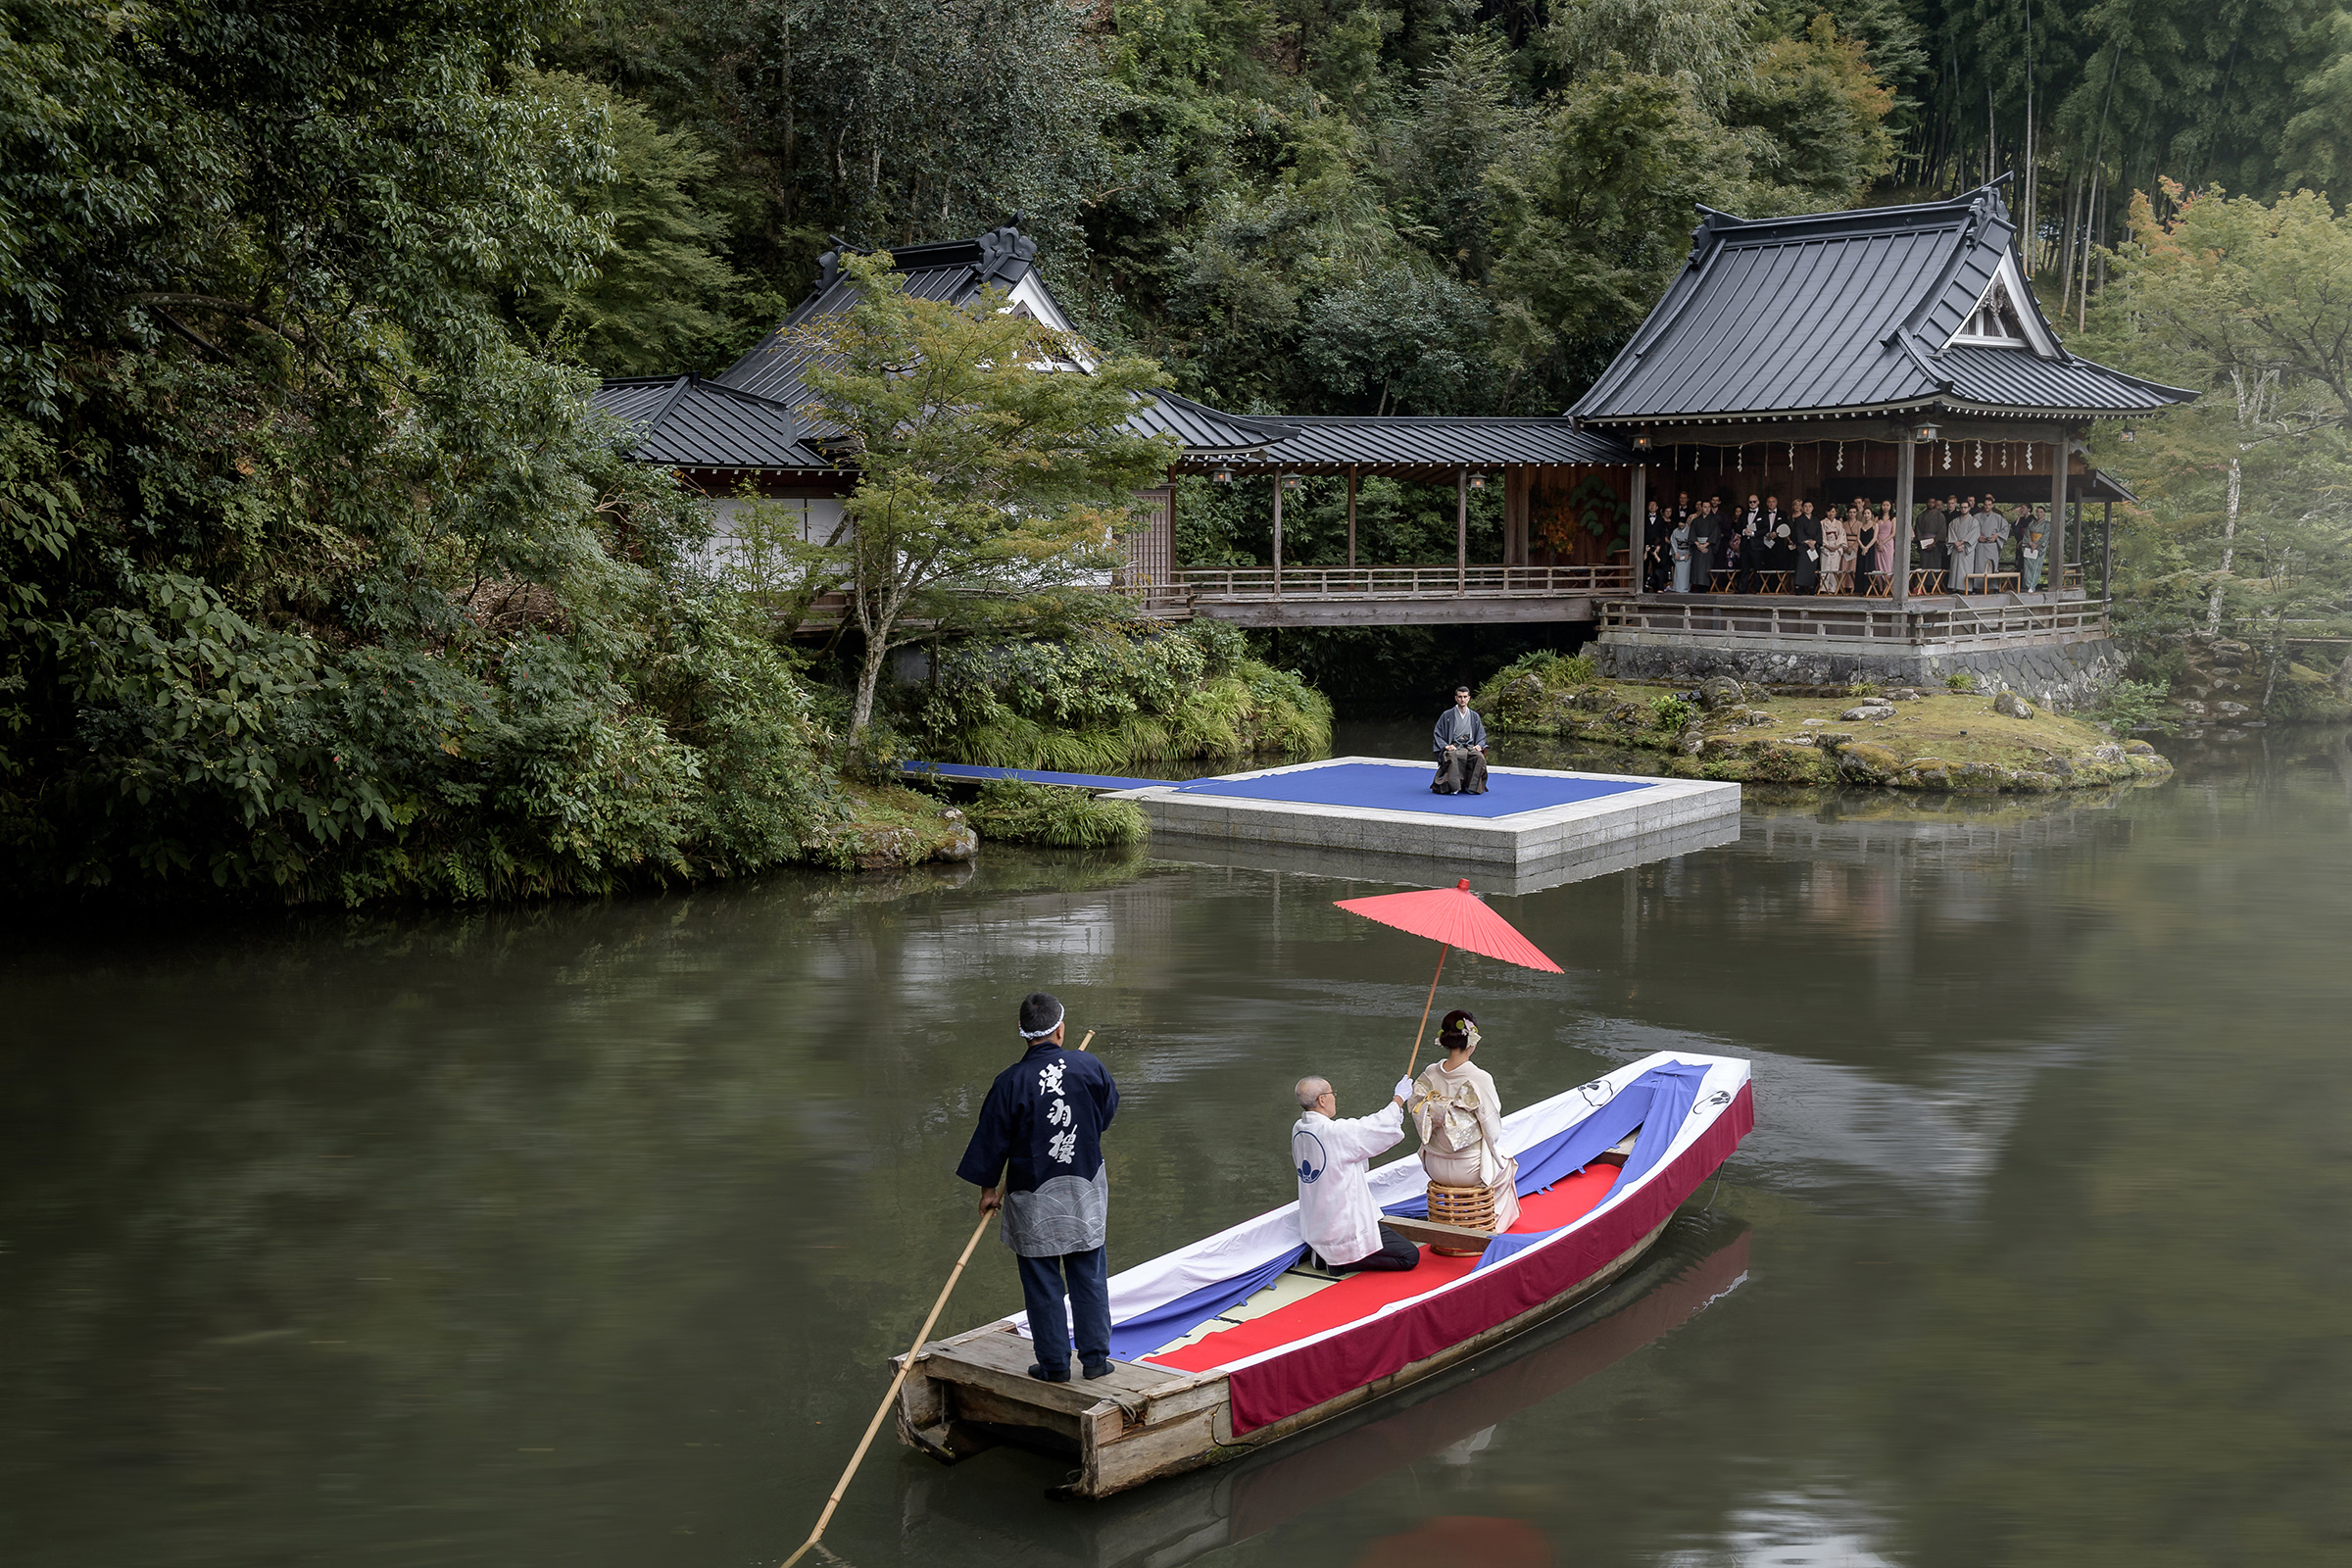 traditional-bride-boat-being-paddled-to-waiting-groom-37-frames